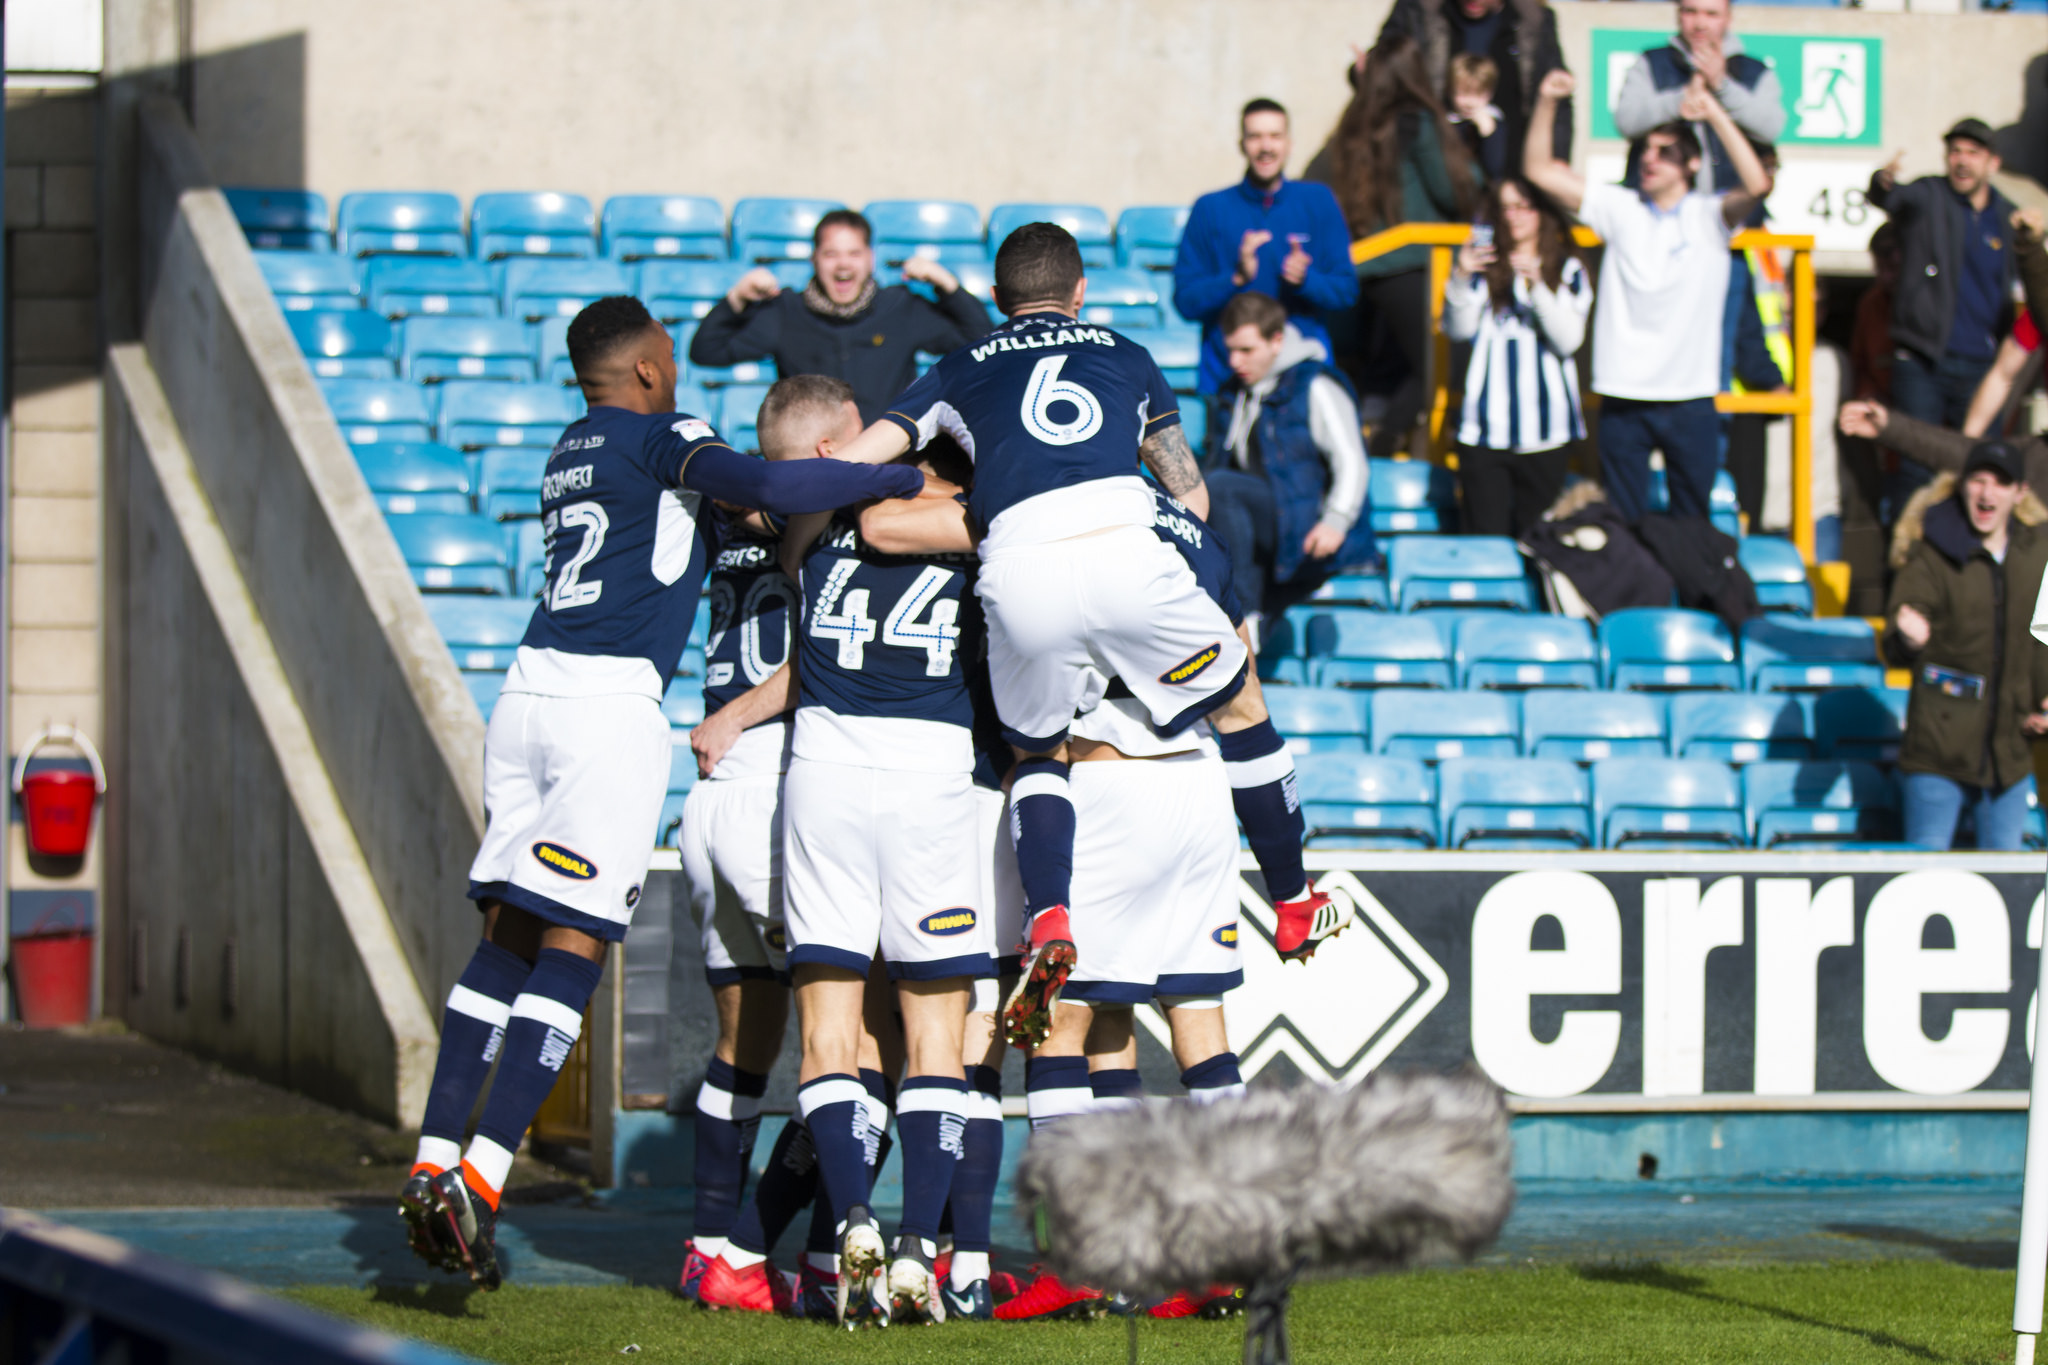 Millwall players celebrate against Brentford | Picture: Benjamin Peters Photography